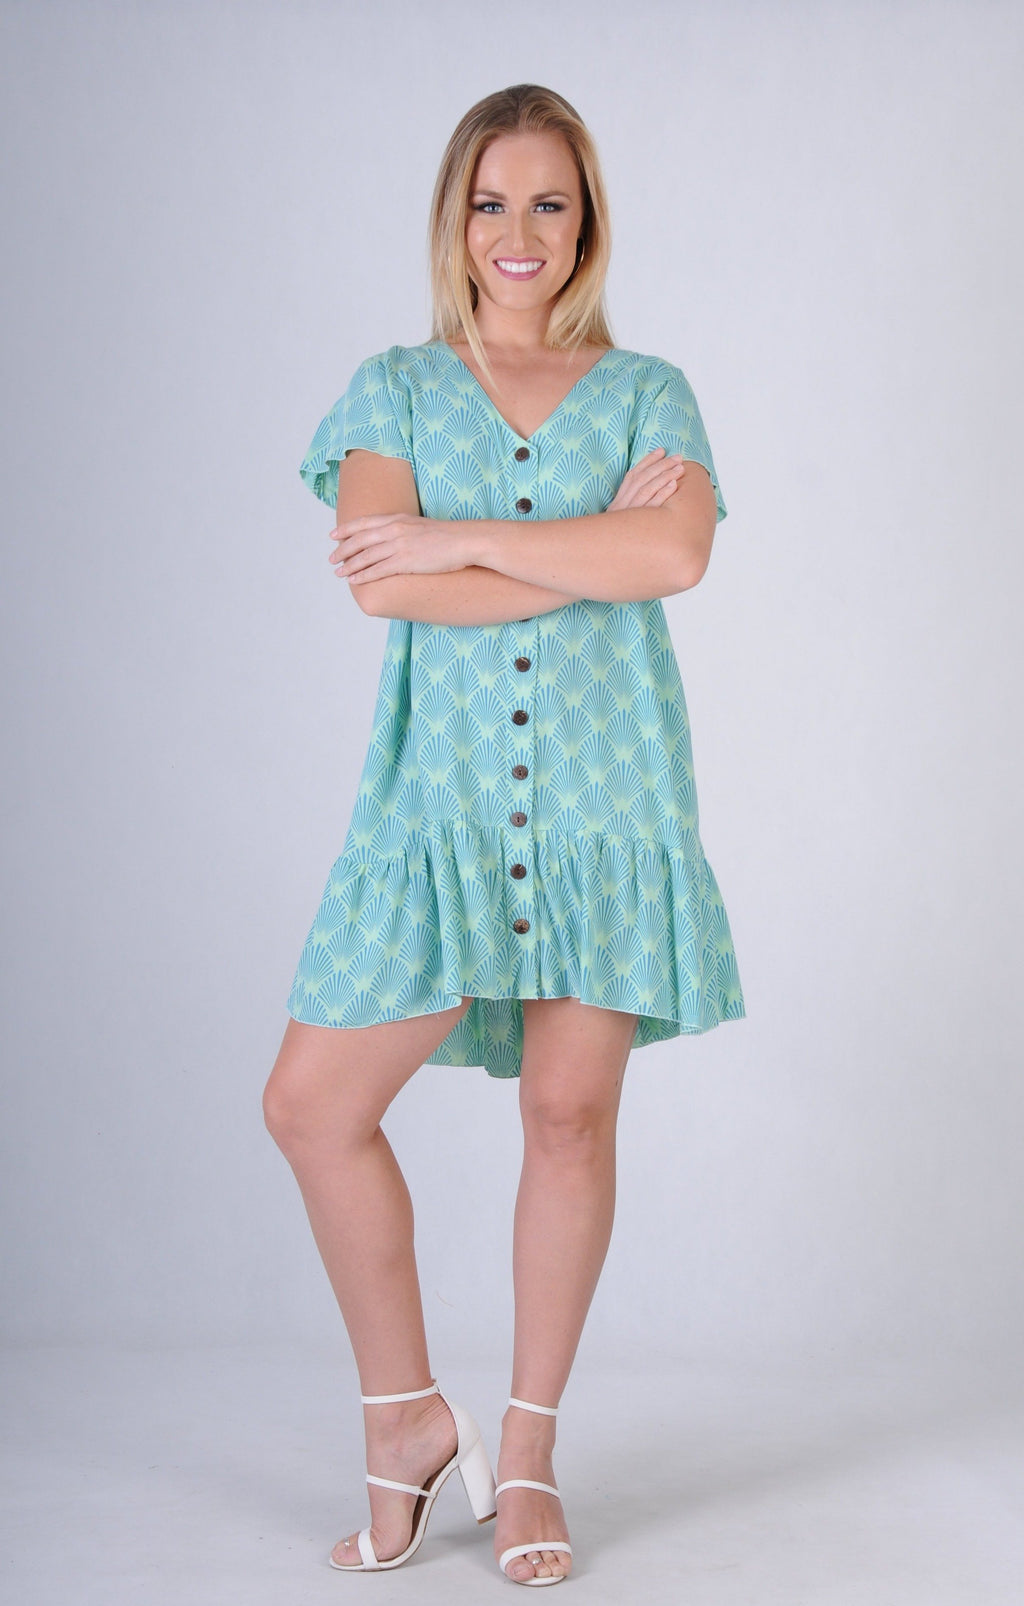 VGLD219 - CAP SLEEVE BUTTON DRESS - FAN BLUE